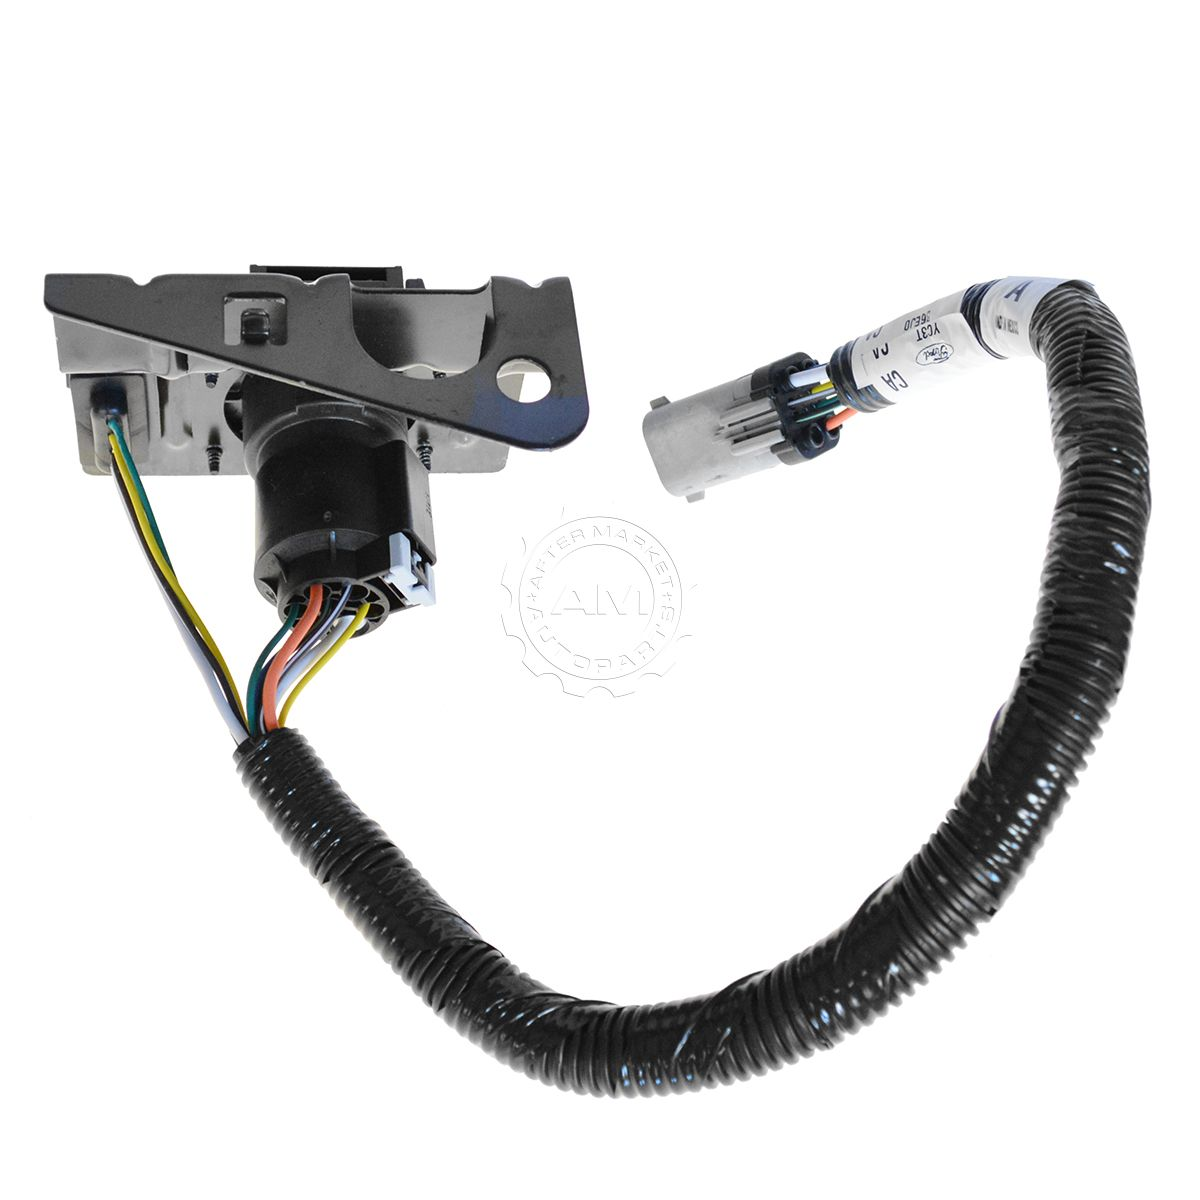 details about ford 4 \u0026 7 pin trailer tow wiring harness w plug \u0026 bracket for f250 f350 f450 sd Ford Super Duty Trailer Plug Wiring